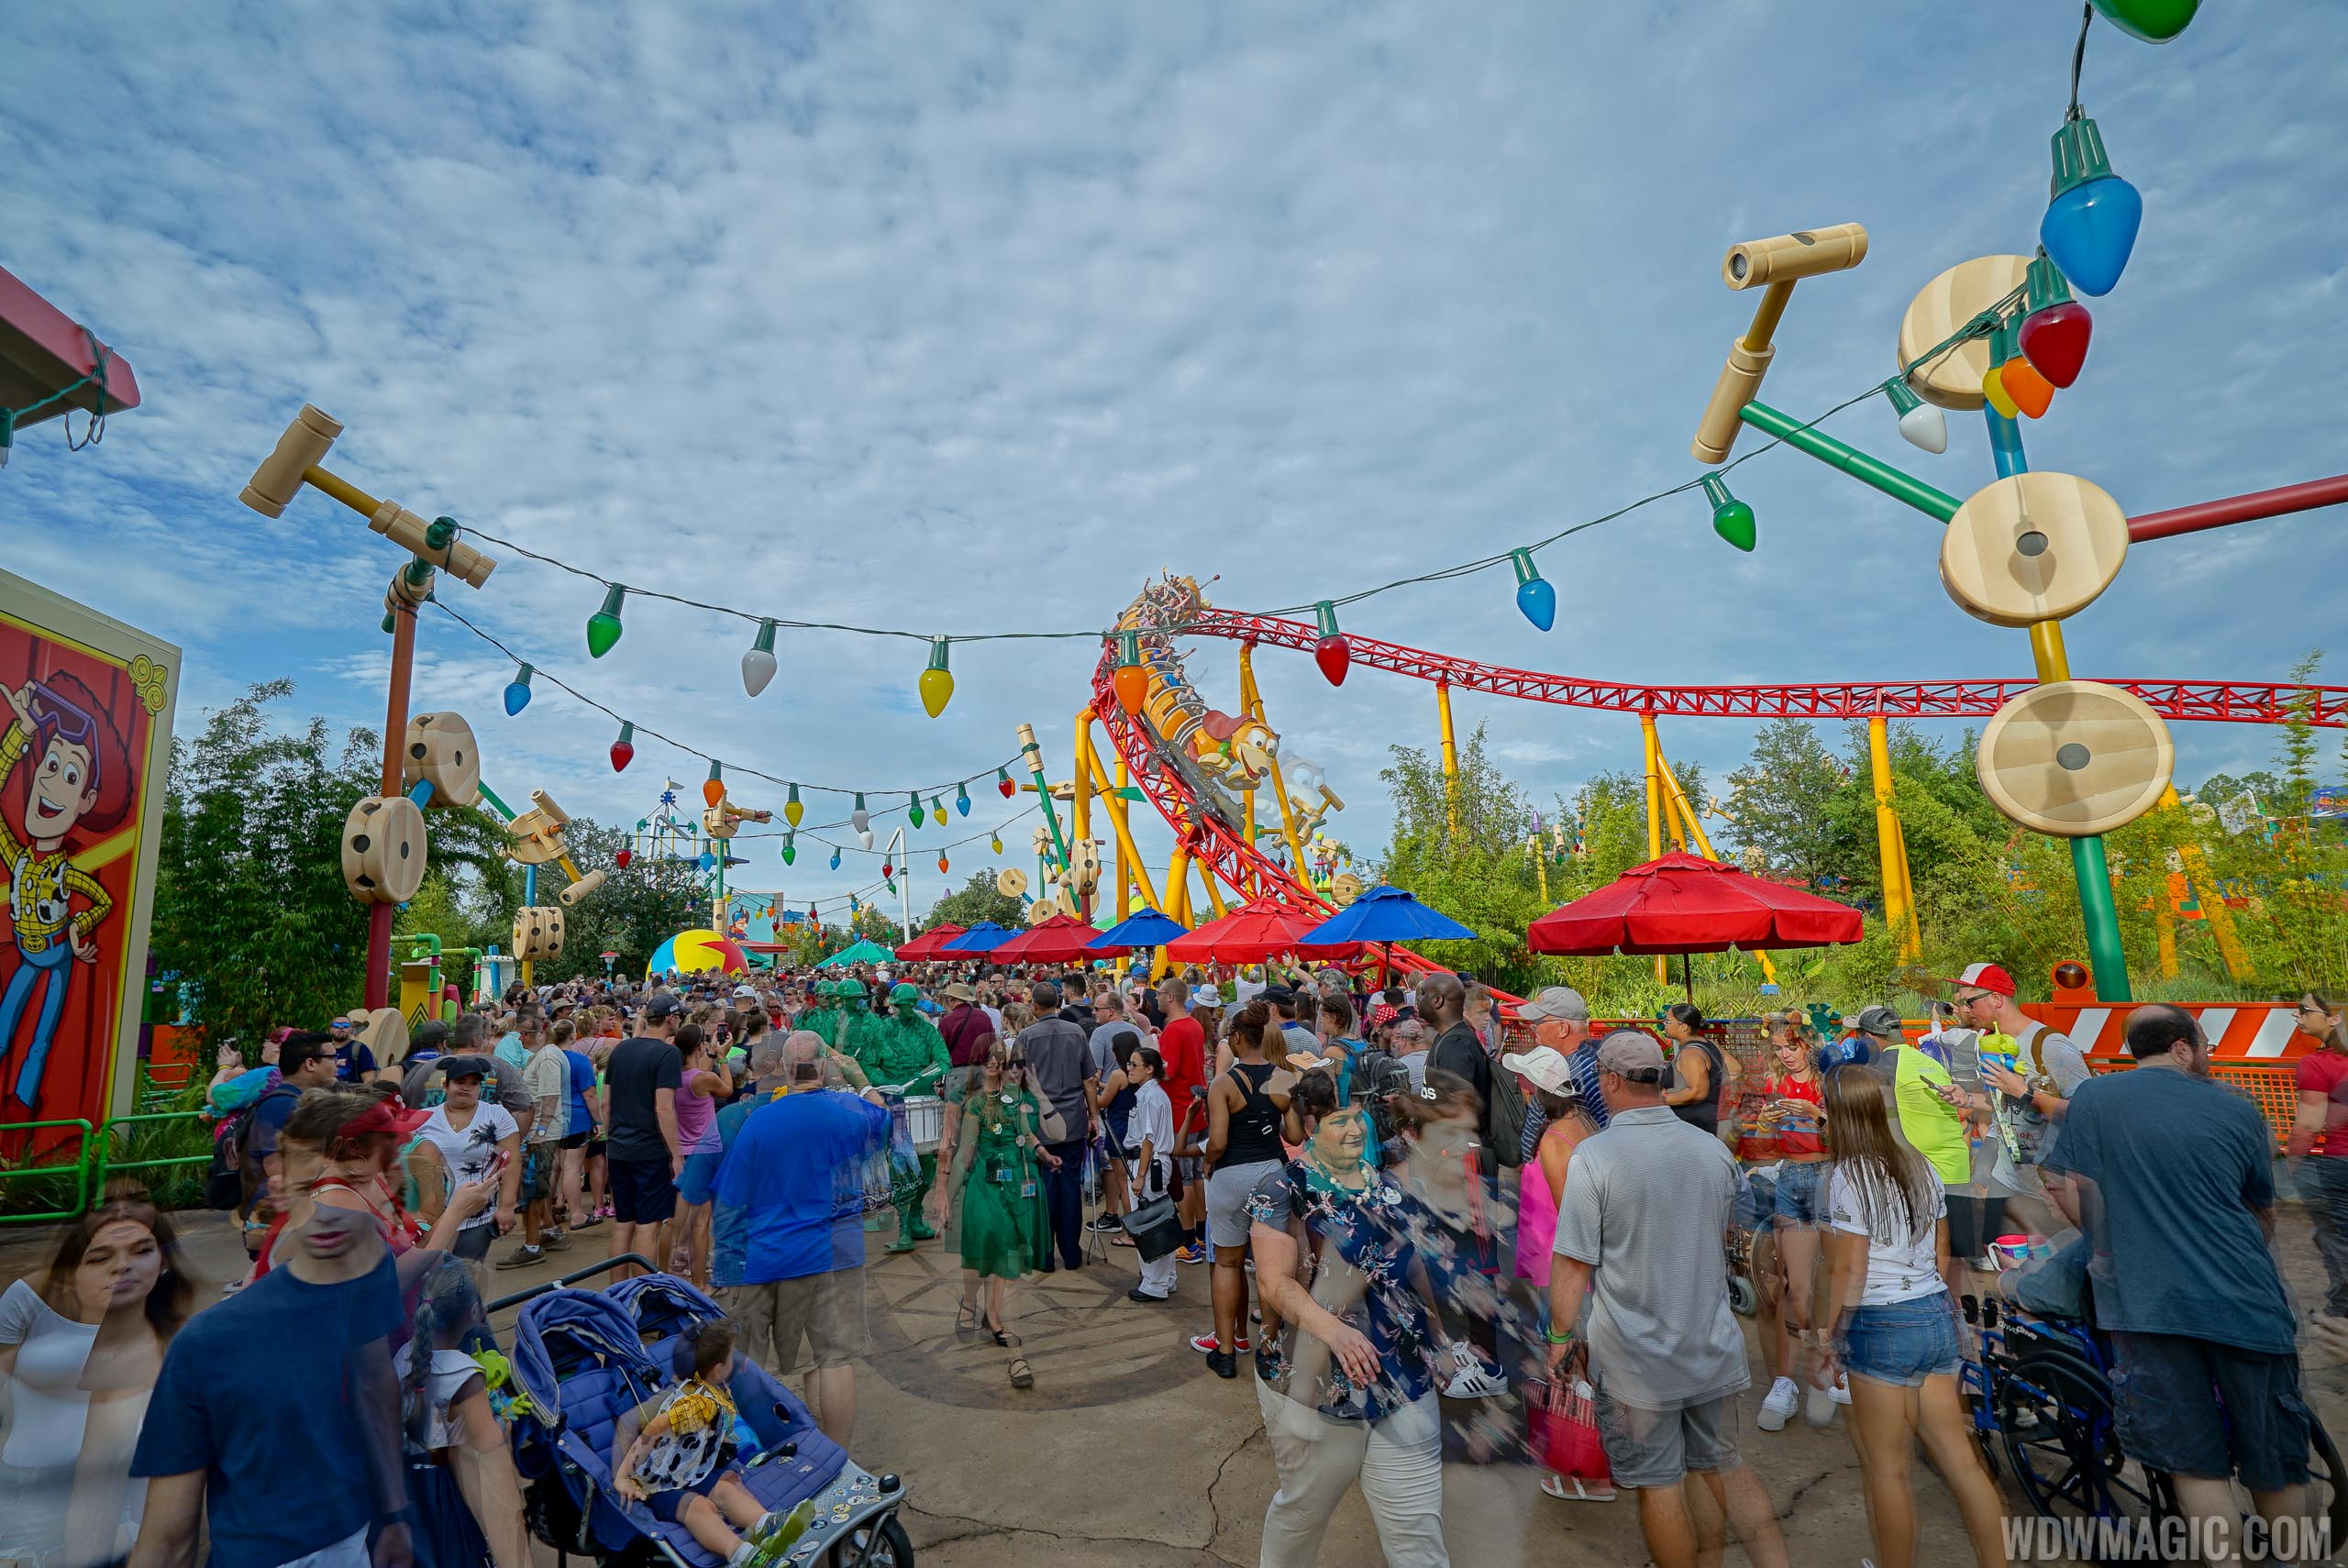 Crowds quickly gathered inside Toy Story Land